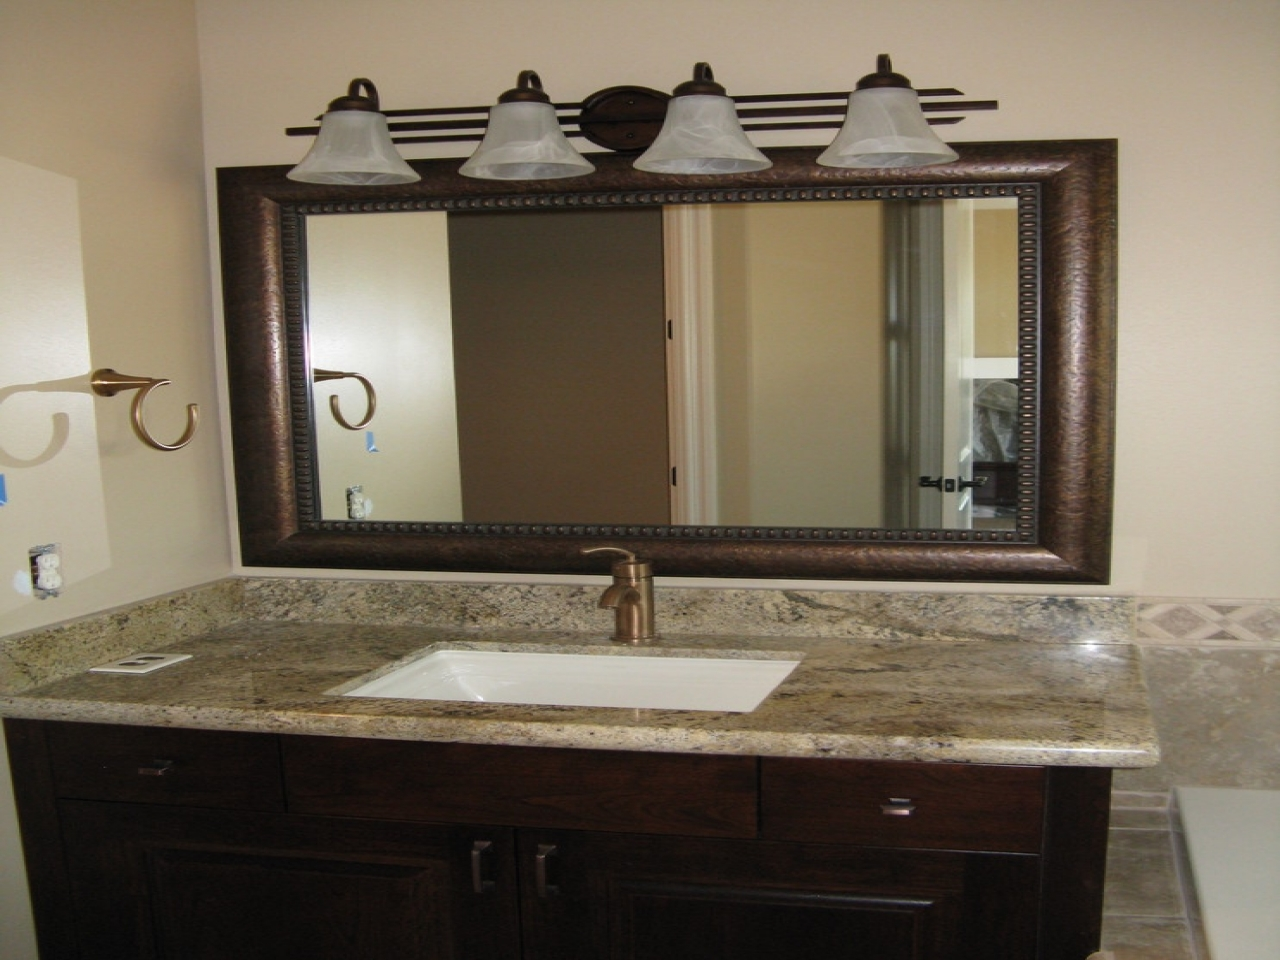 vanity wall mirrors for bathroom photos of size 1280x960 framed bathroom vanity 24482